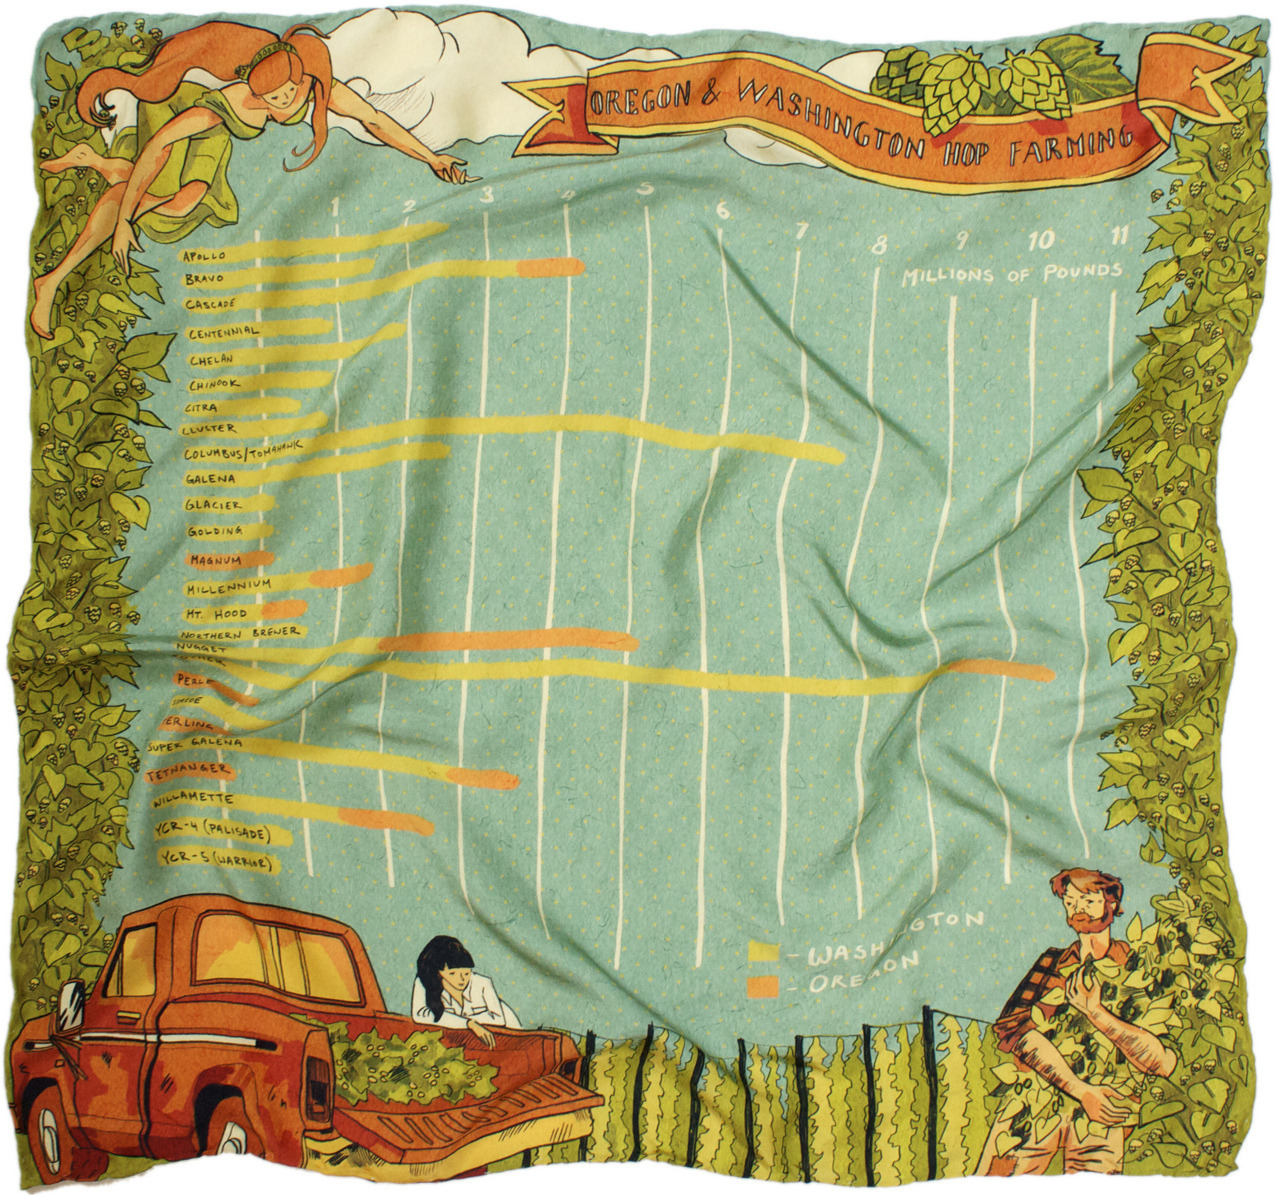 Oregon & Washington Hop Farming-part of a series of silk scarves as info-graphics